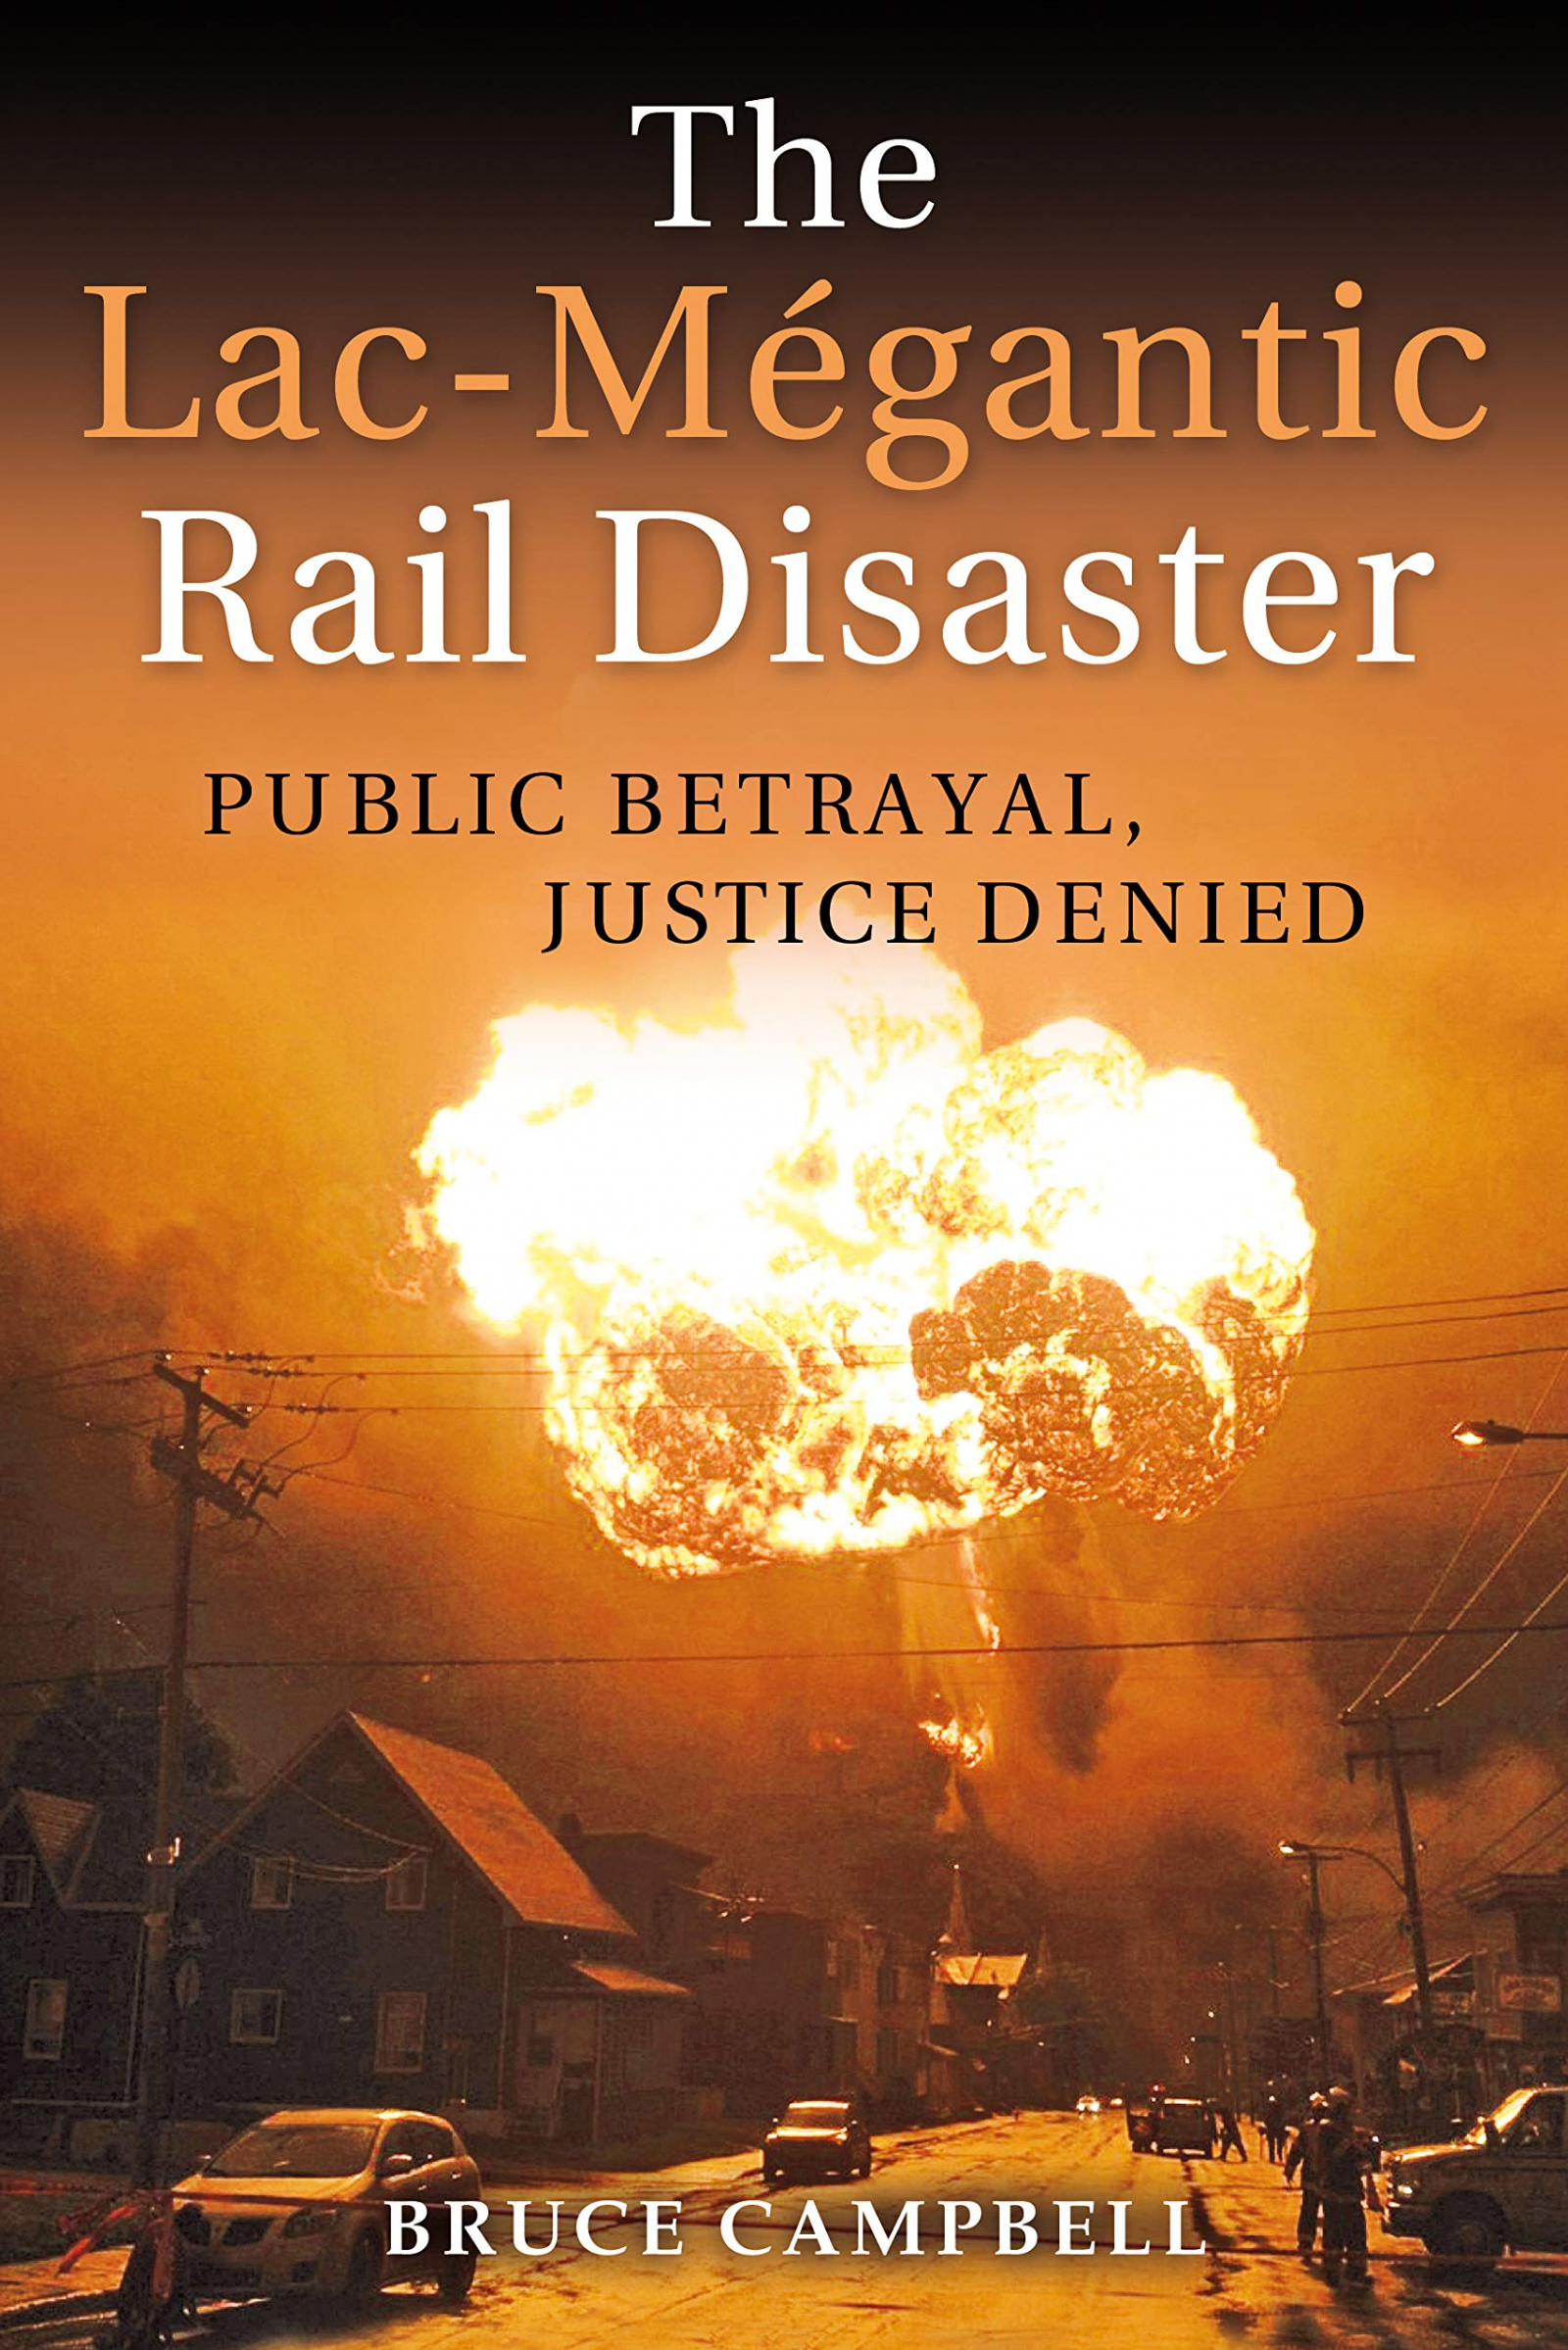 Public Betrayal, Justice Denied. Book cover.